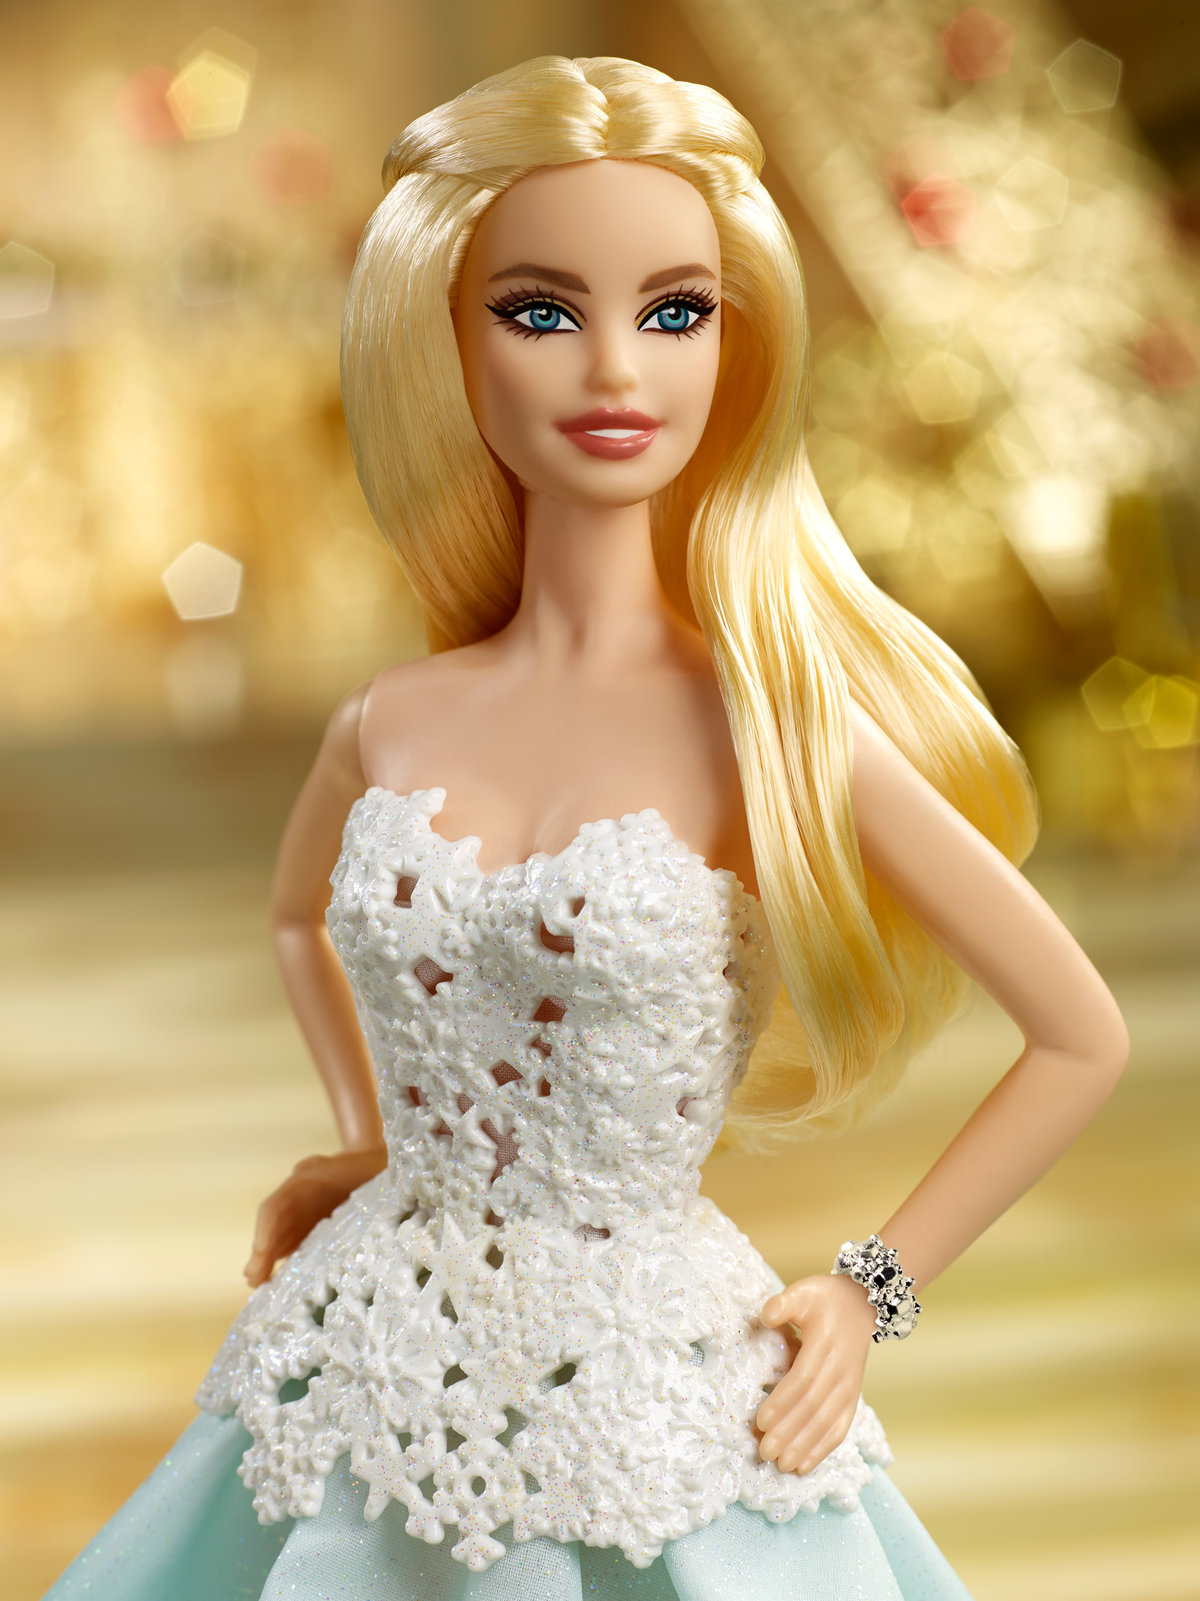 This is a picture of Irresistible Images of Barbies